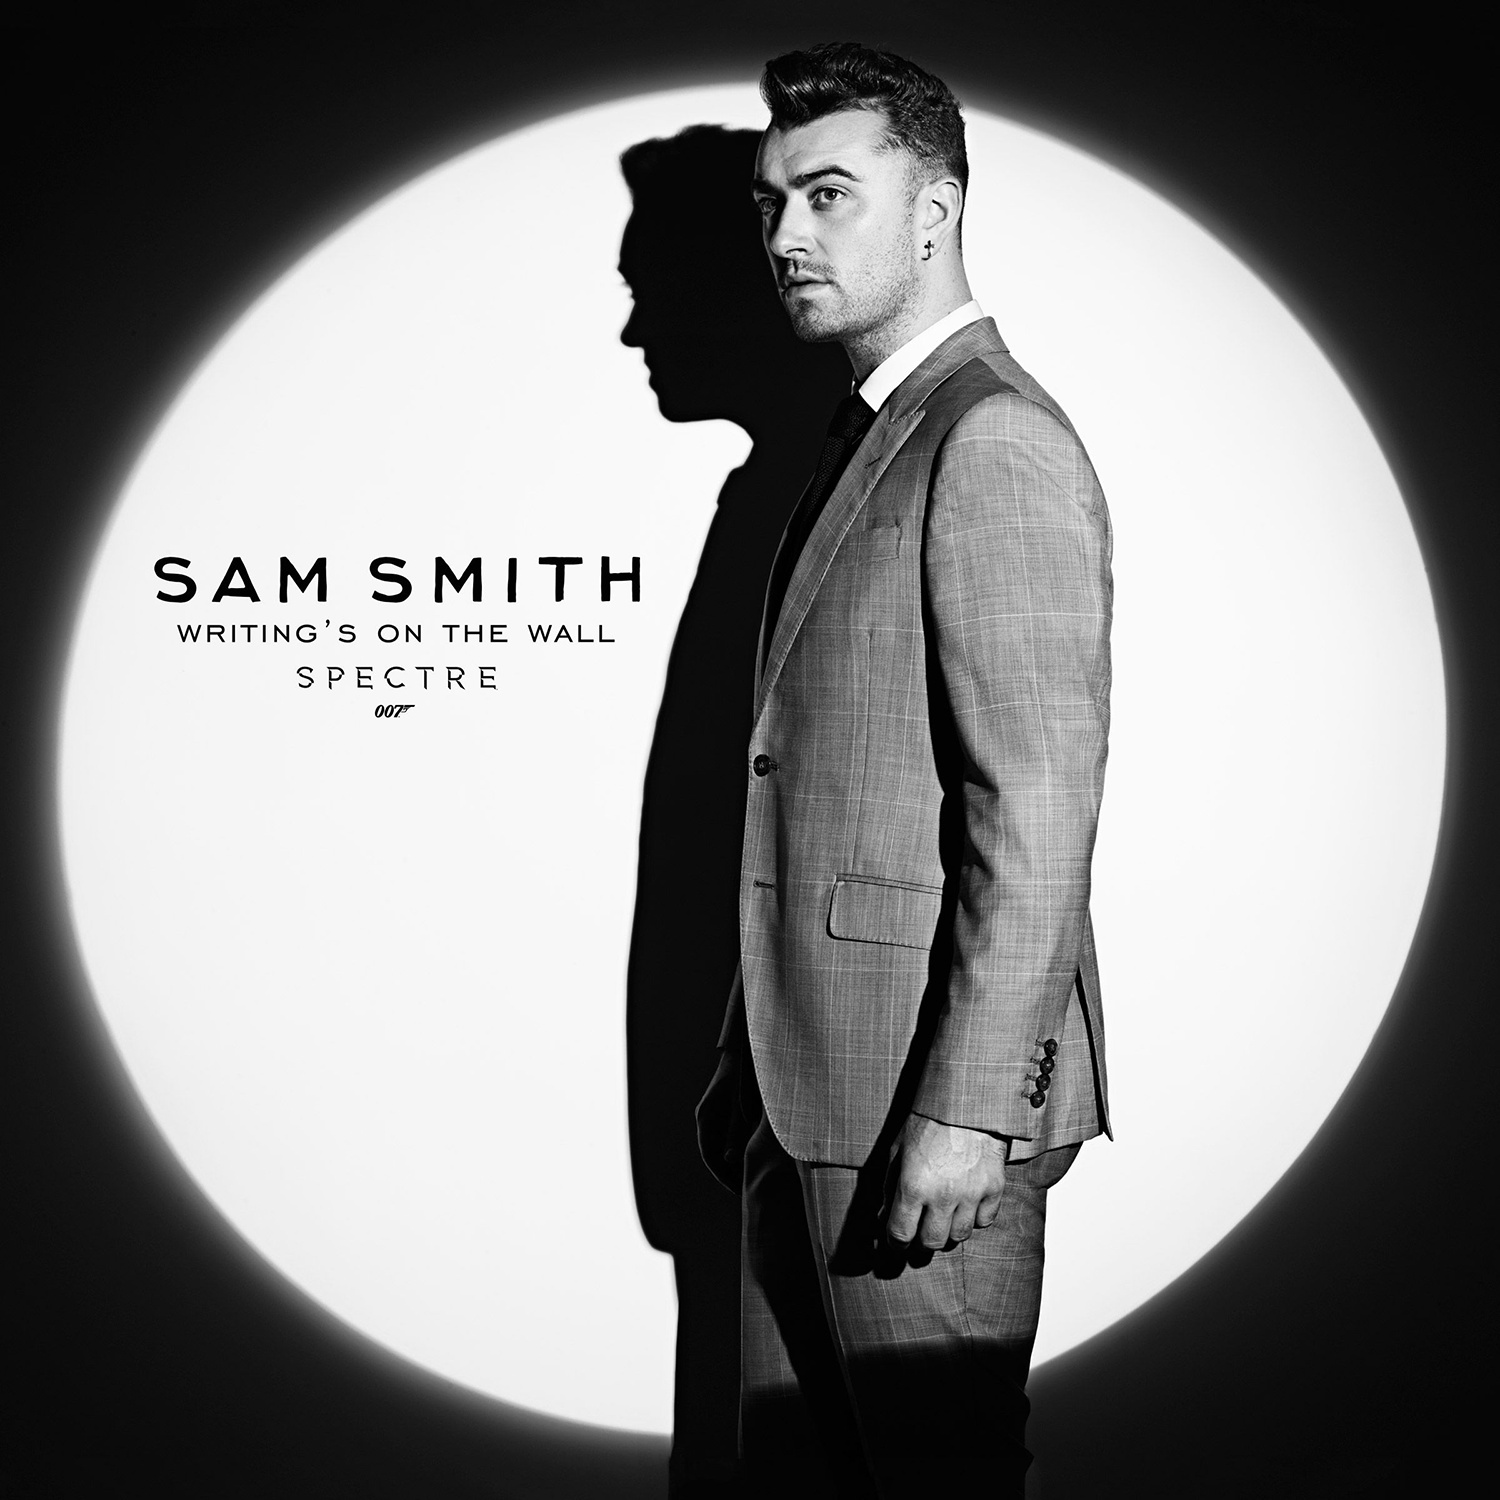 Writing's On The Wall by Sam Smith